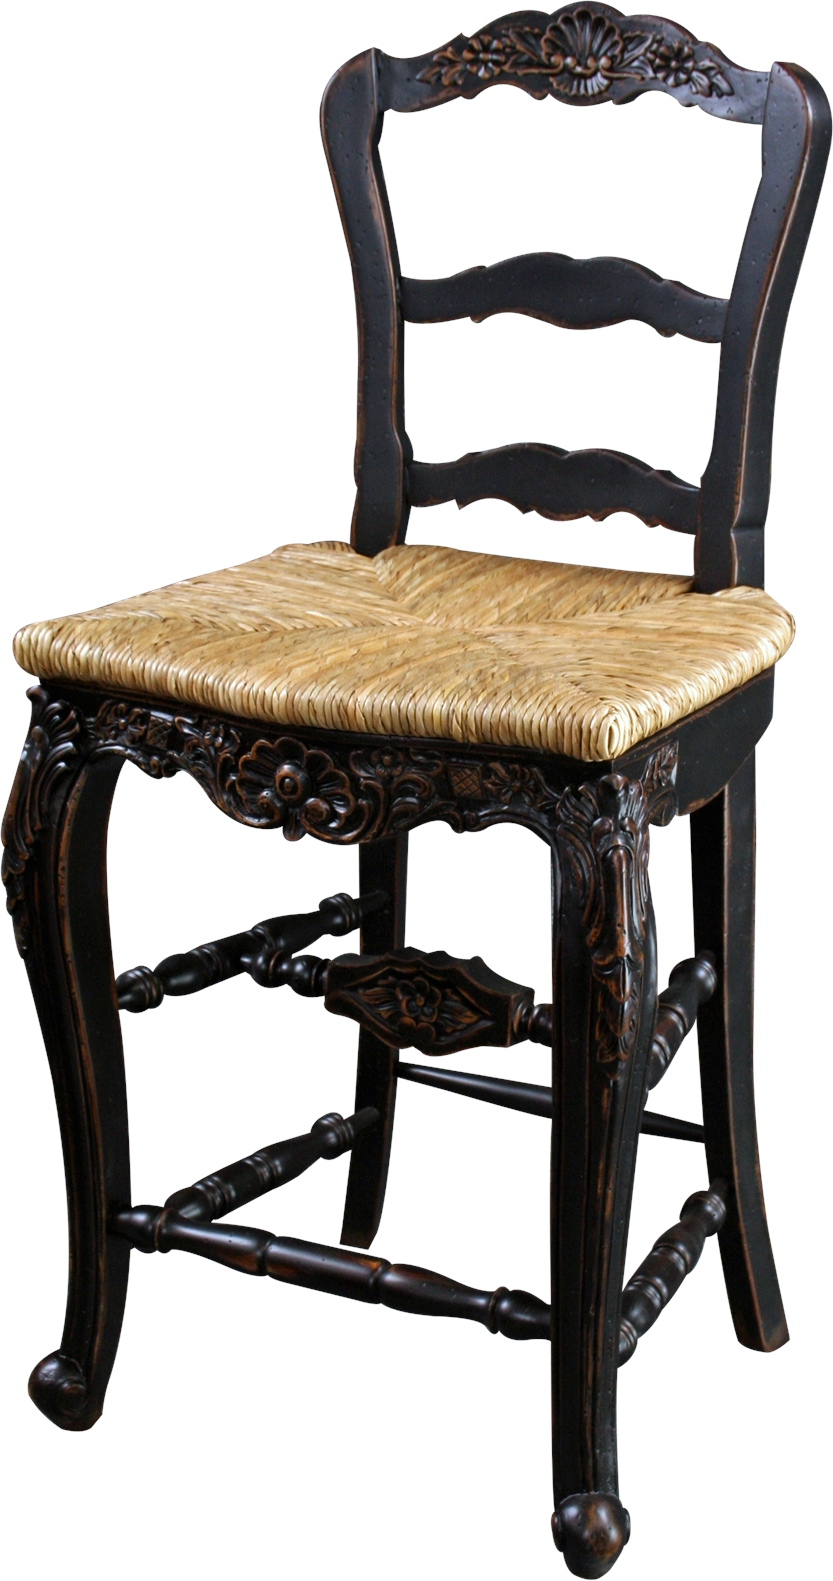 New Counter Height Stool Black French Country Rattan